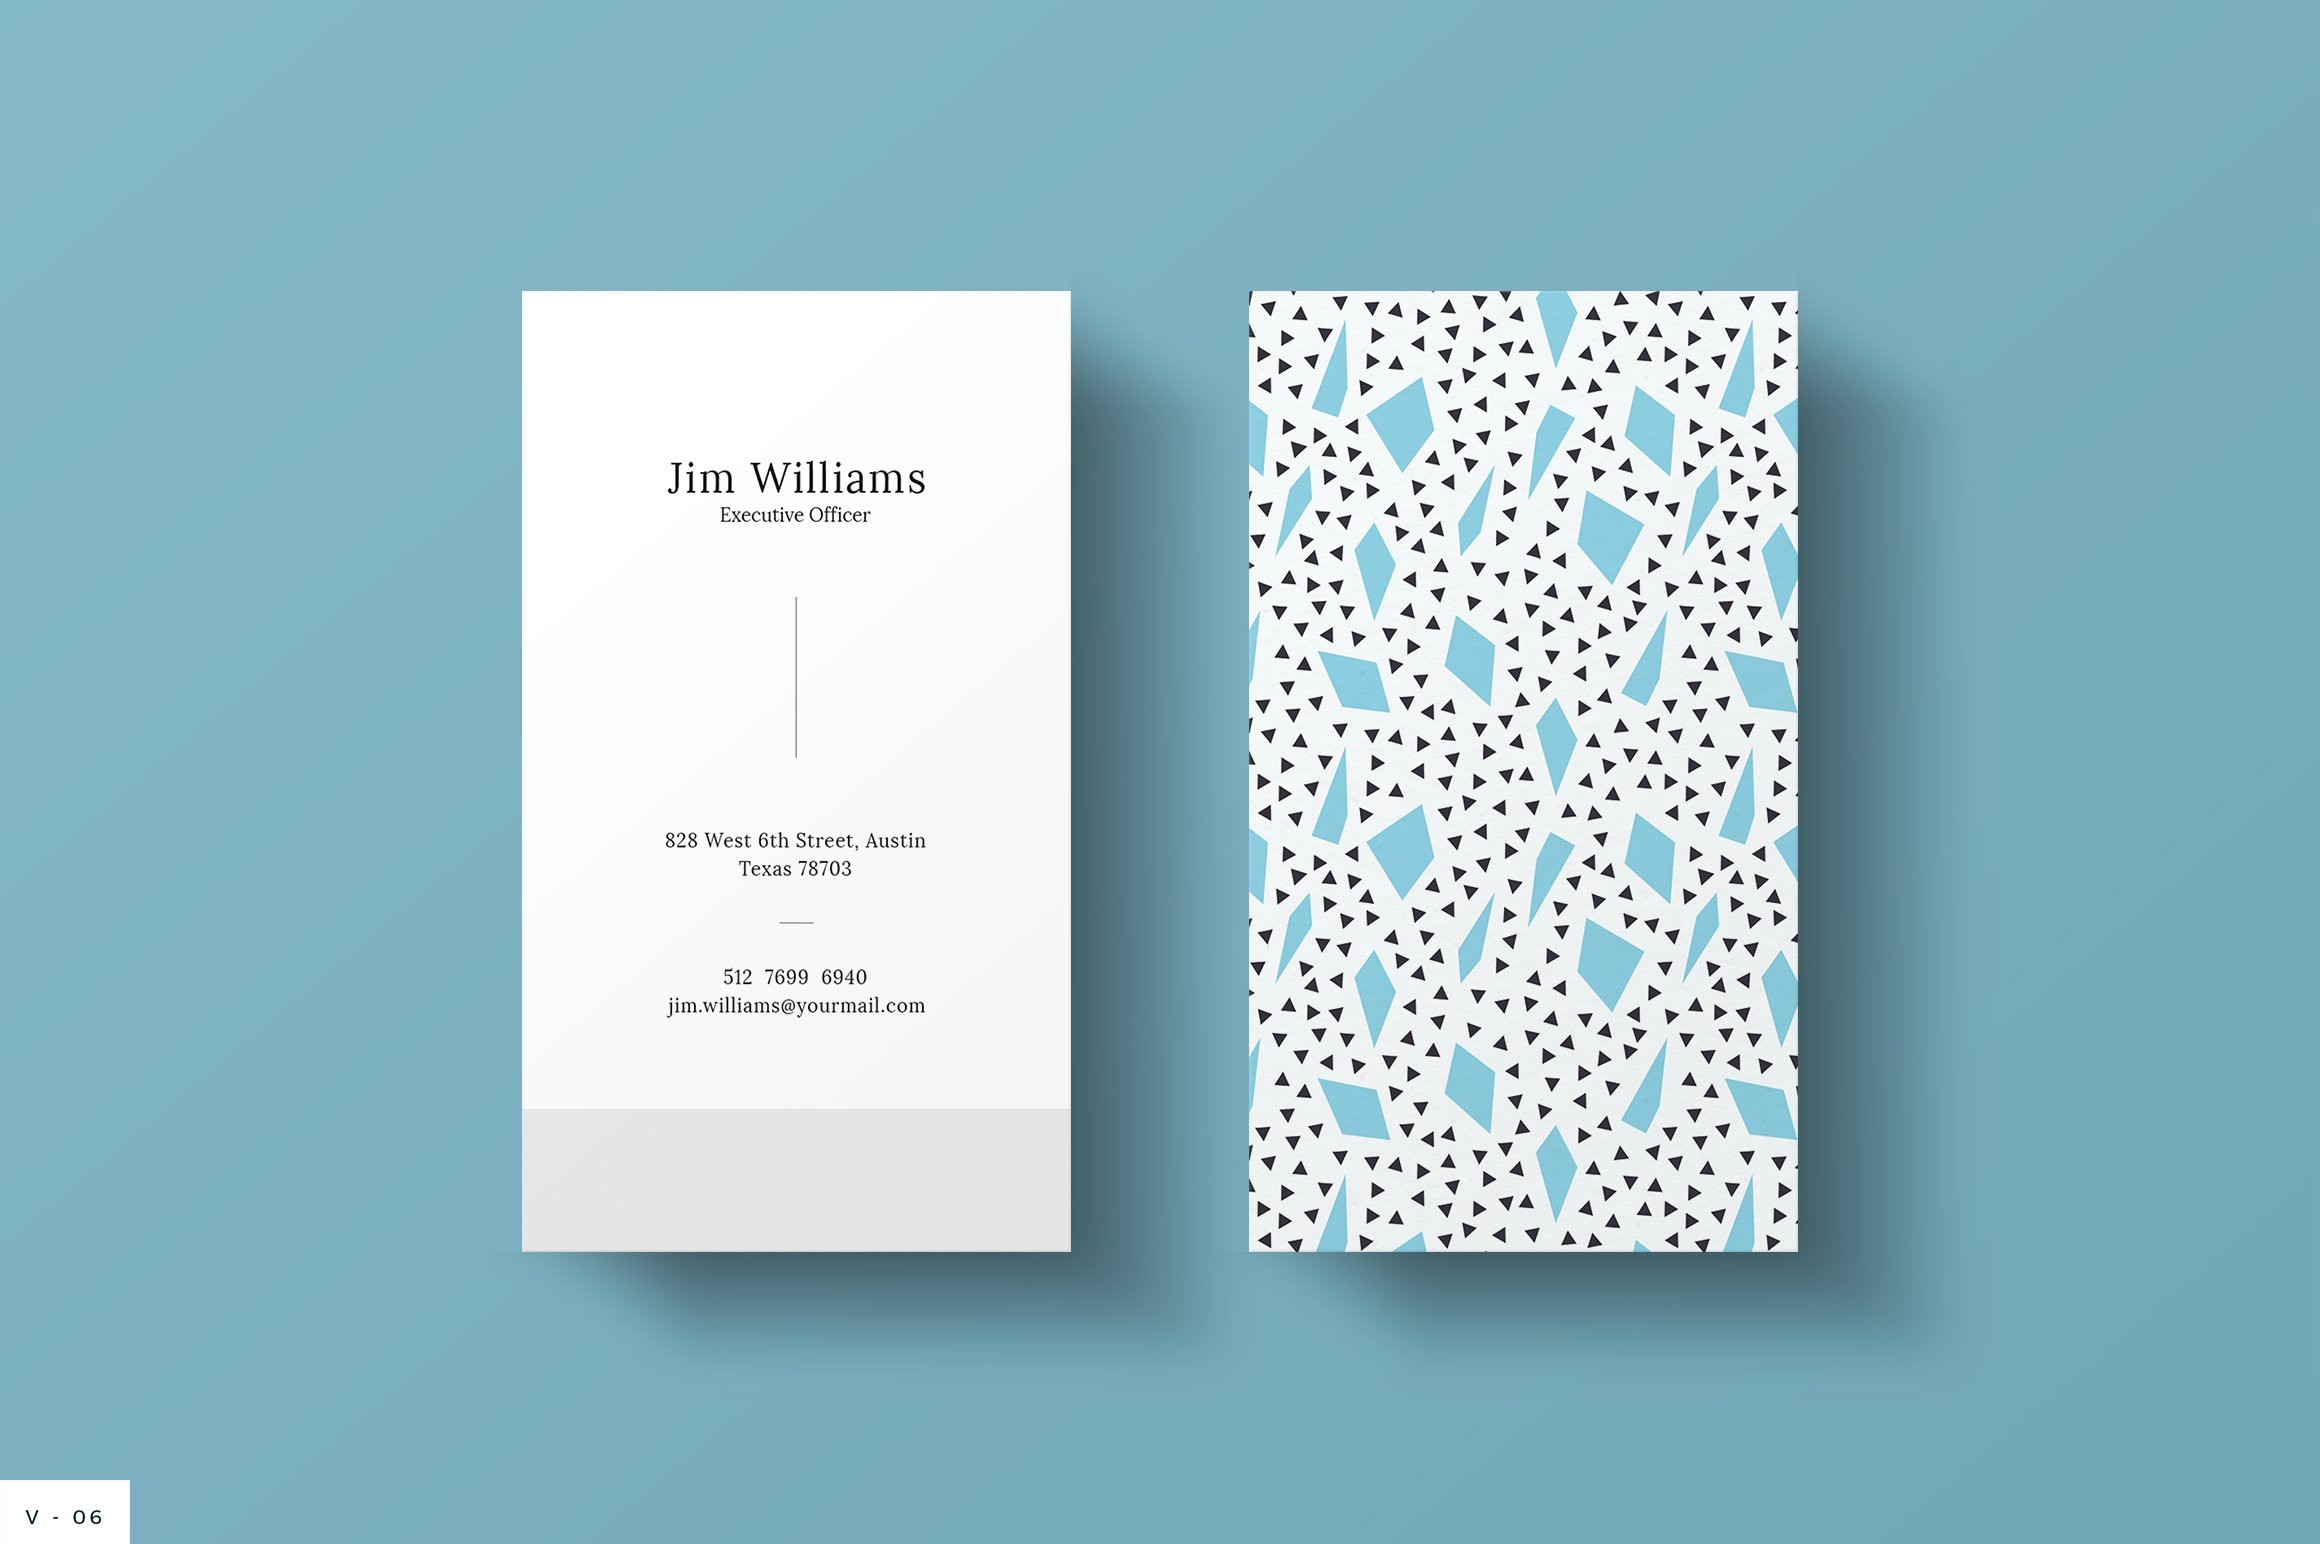 Inspirational Image Of Business Card Indesign Template Business - Business card indesign template